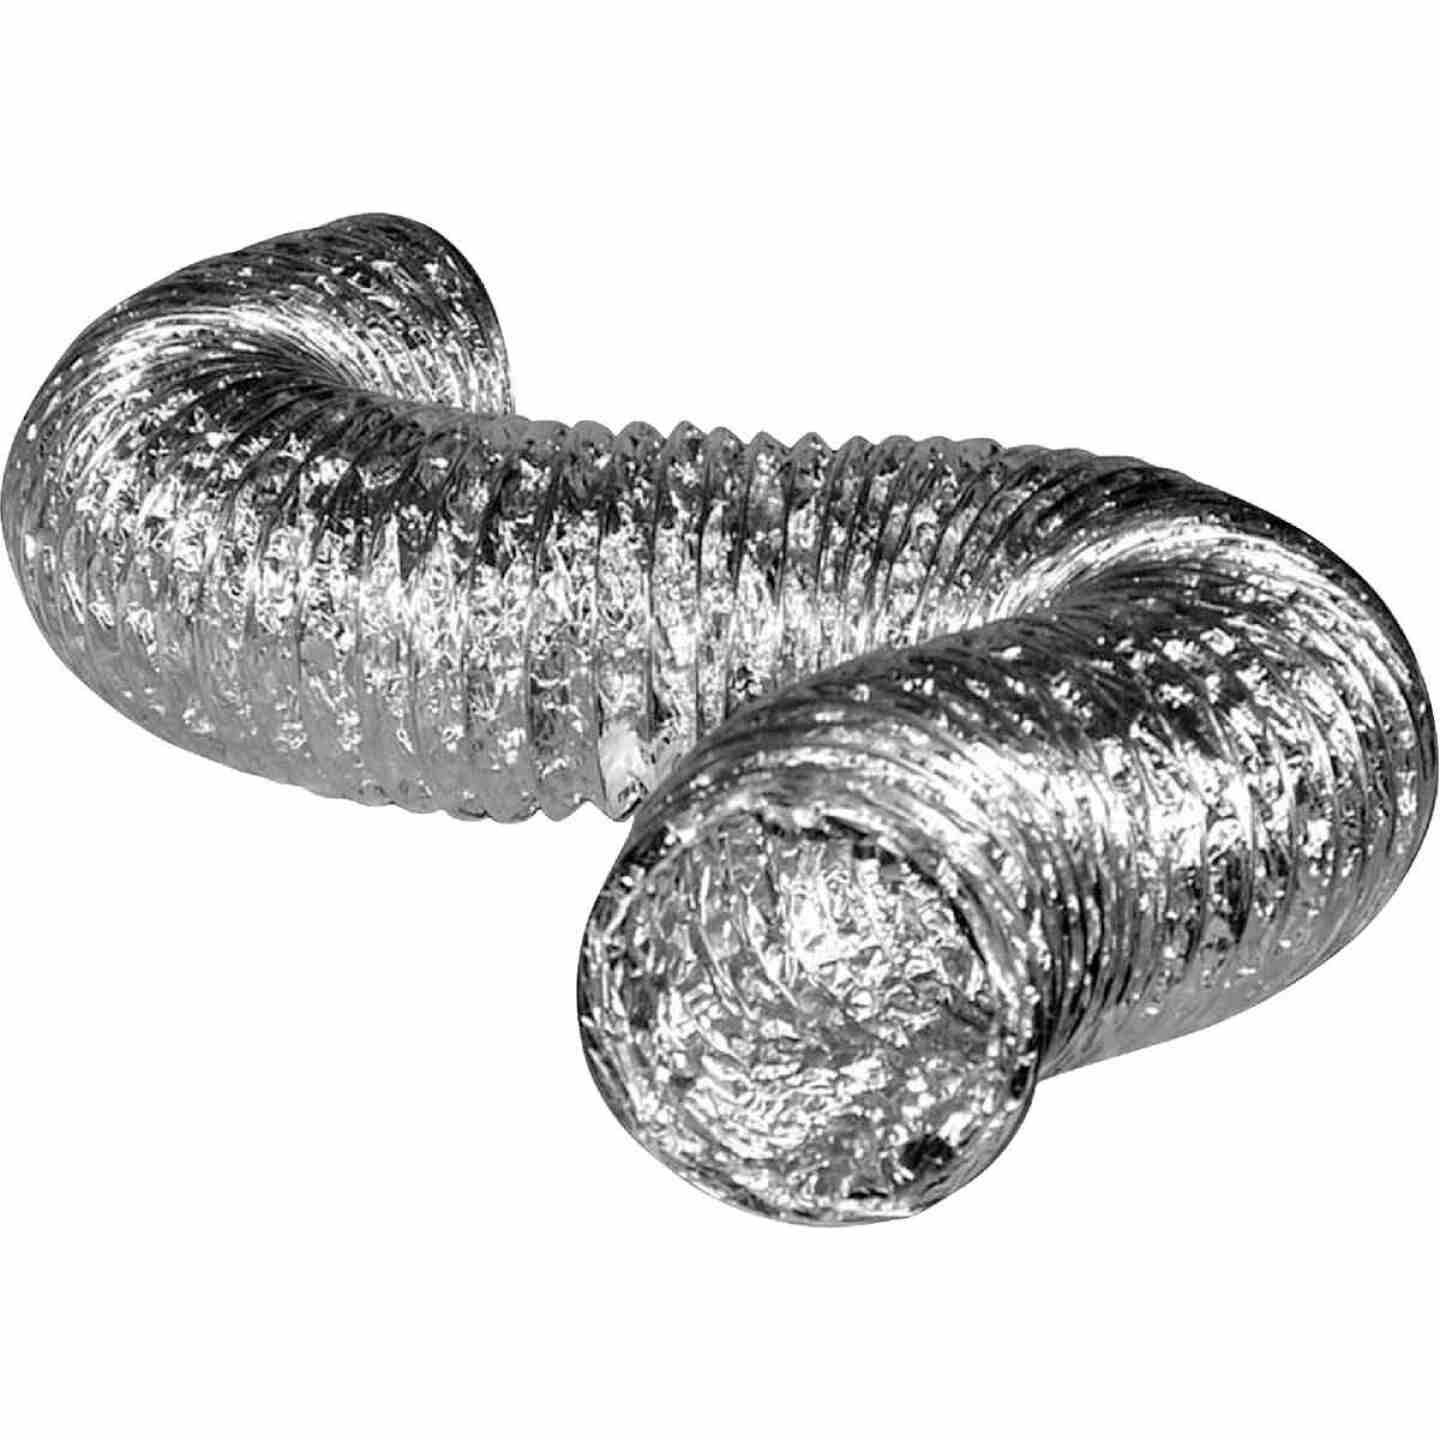 Dundas Jafine 4 In. Dia x 25 Ft. L UL 181 Listed Aluminum Foil Flexible Ducting Image 1